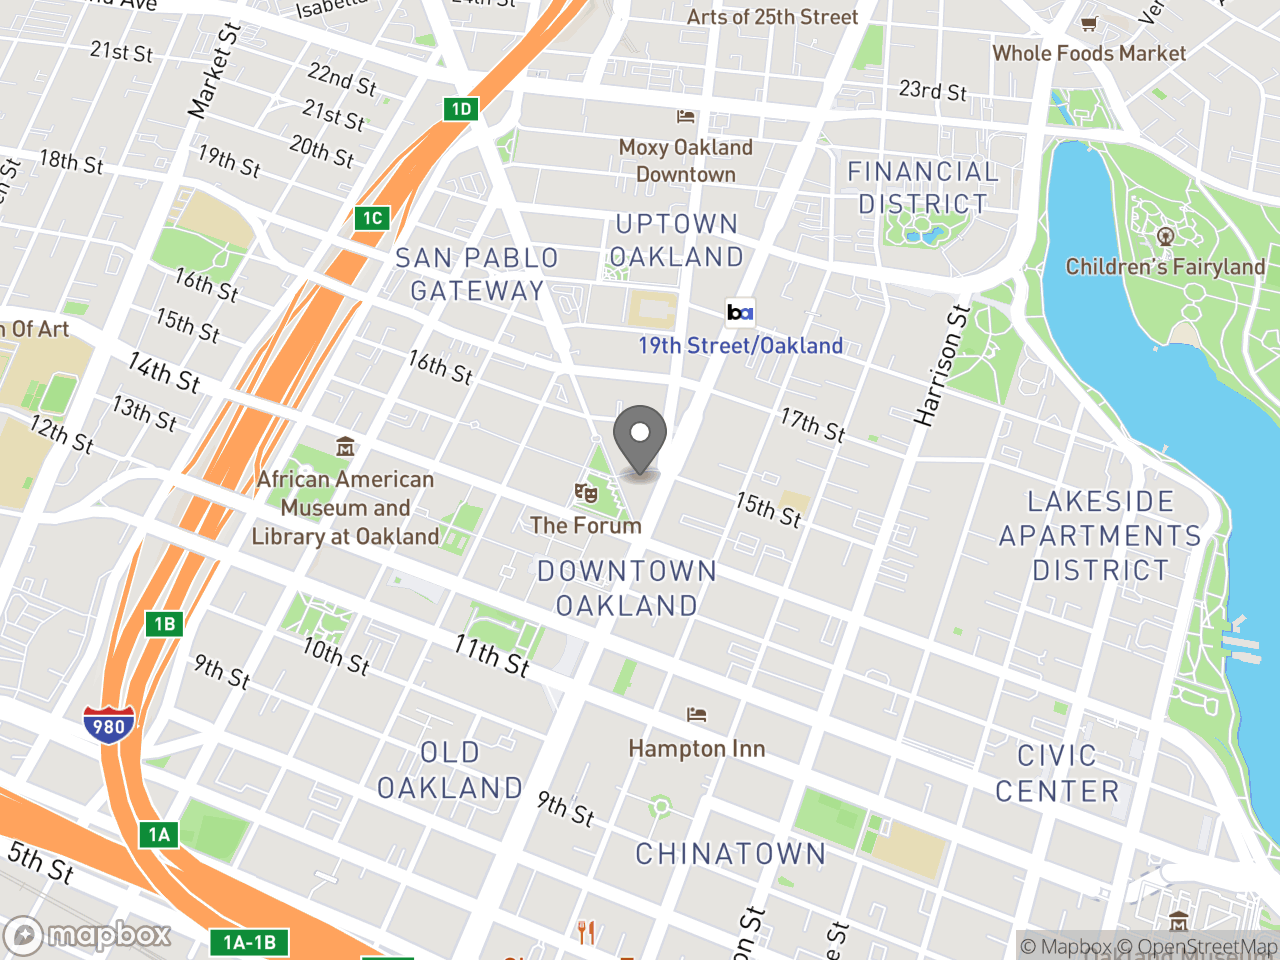 Map location for Mayor's Commission on Aging, located at 150 Frank H Ogawa Plaza in Oakland, CA 94612